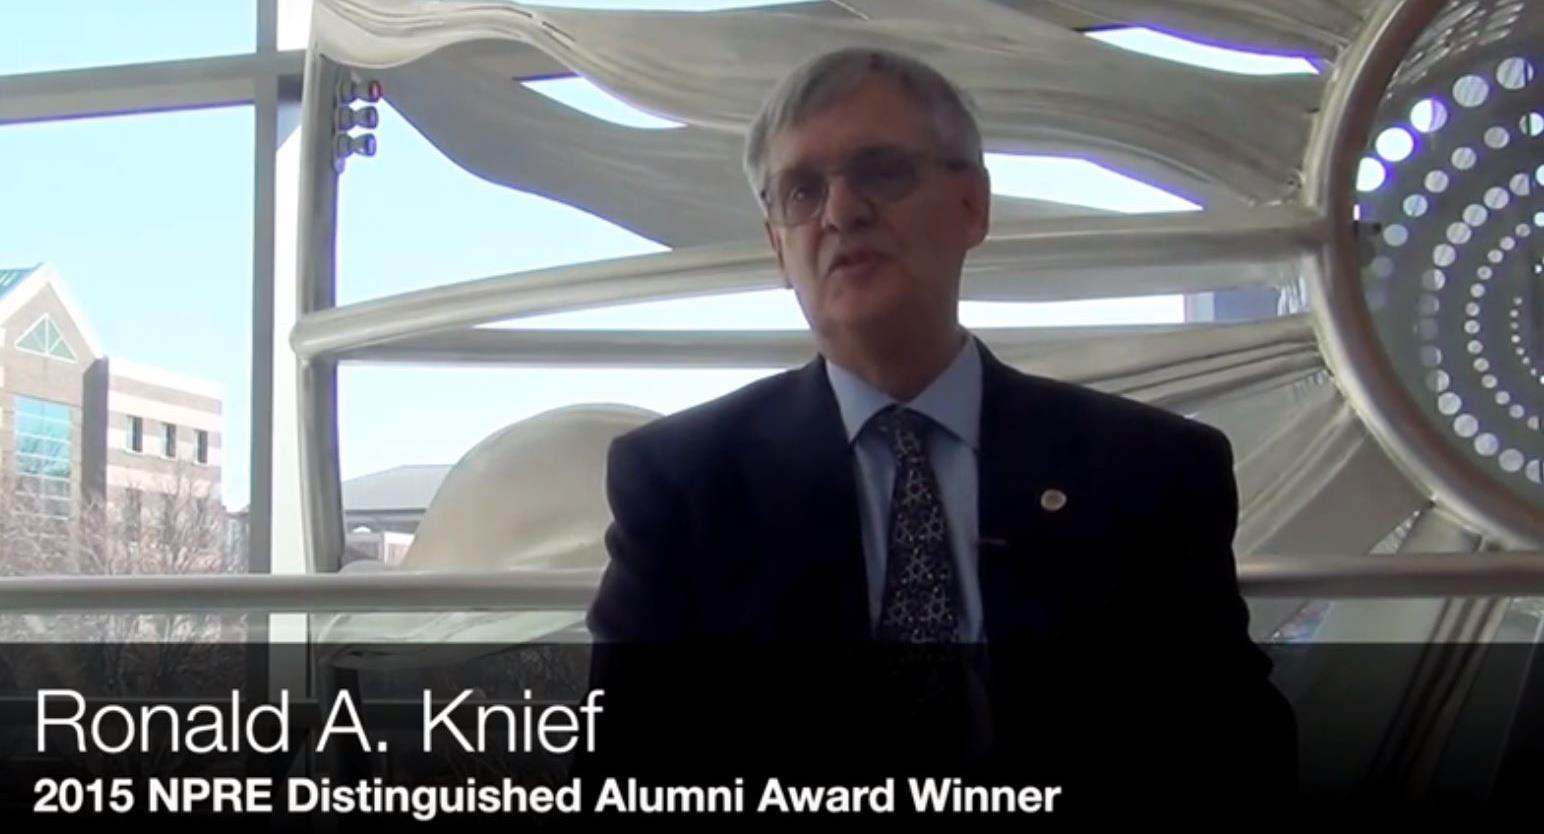 Knief Chosen as 2015 NPRE Distinguished Alumnus